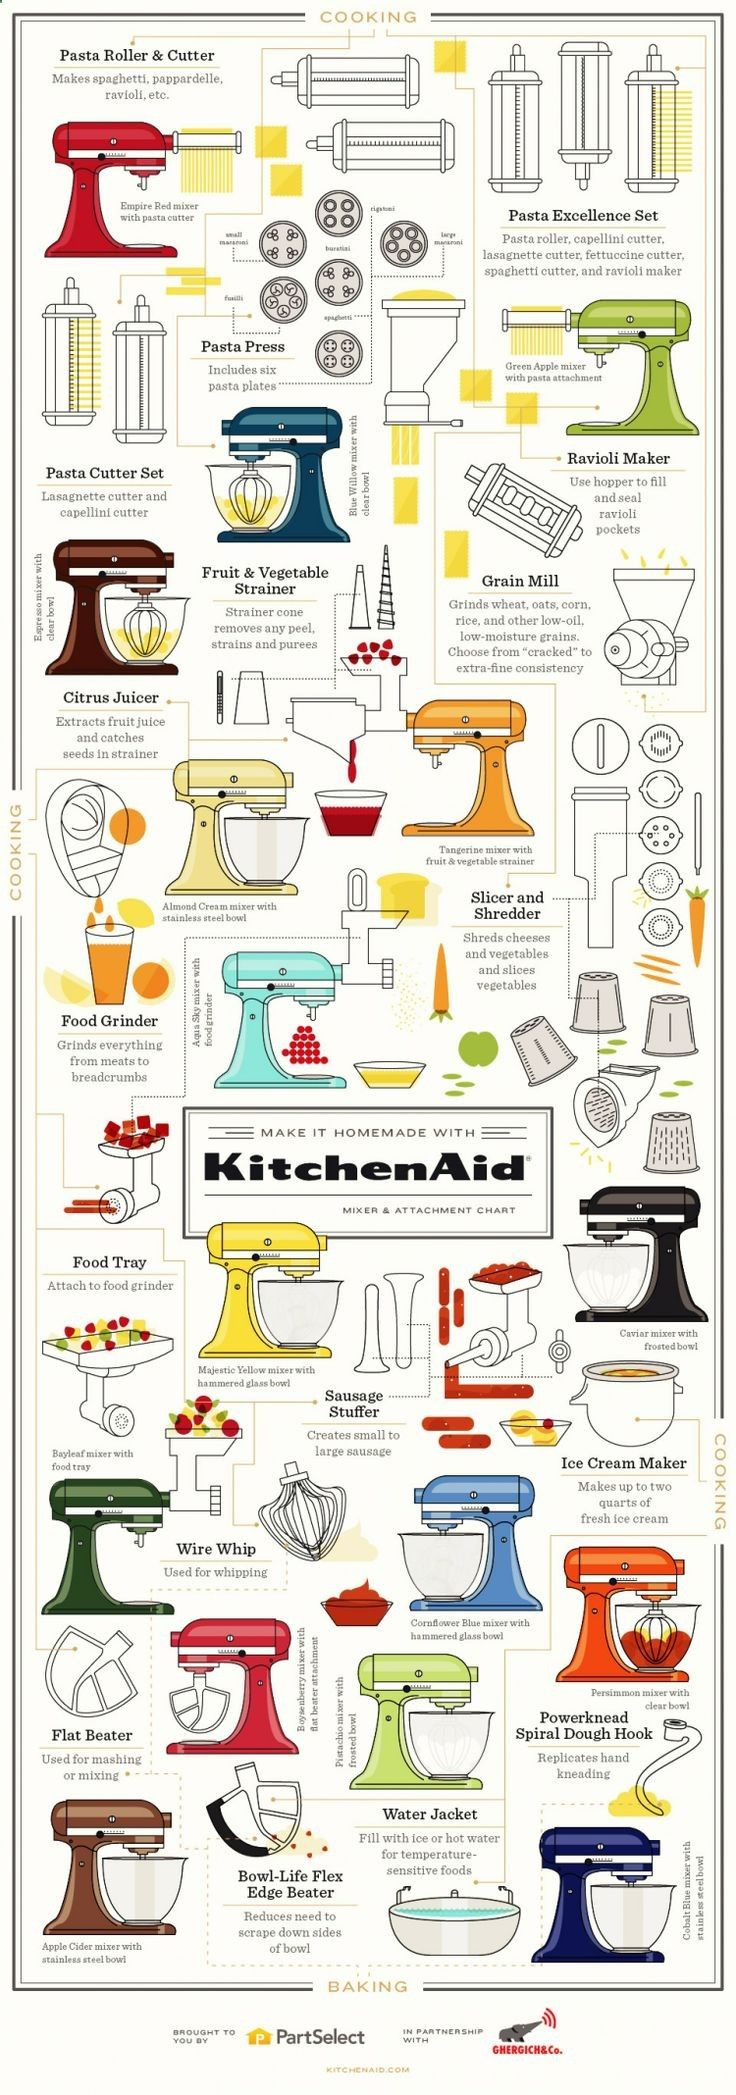 Every KitchenAid mixer attachment and what they do... AWESOME!